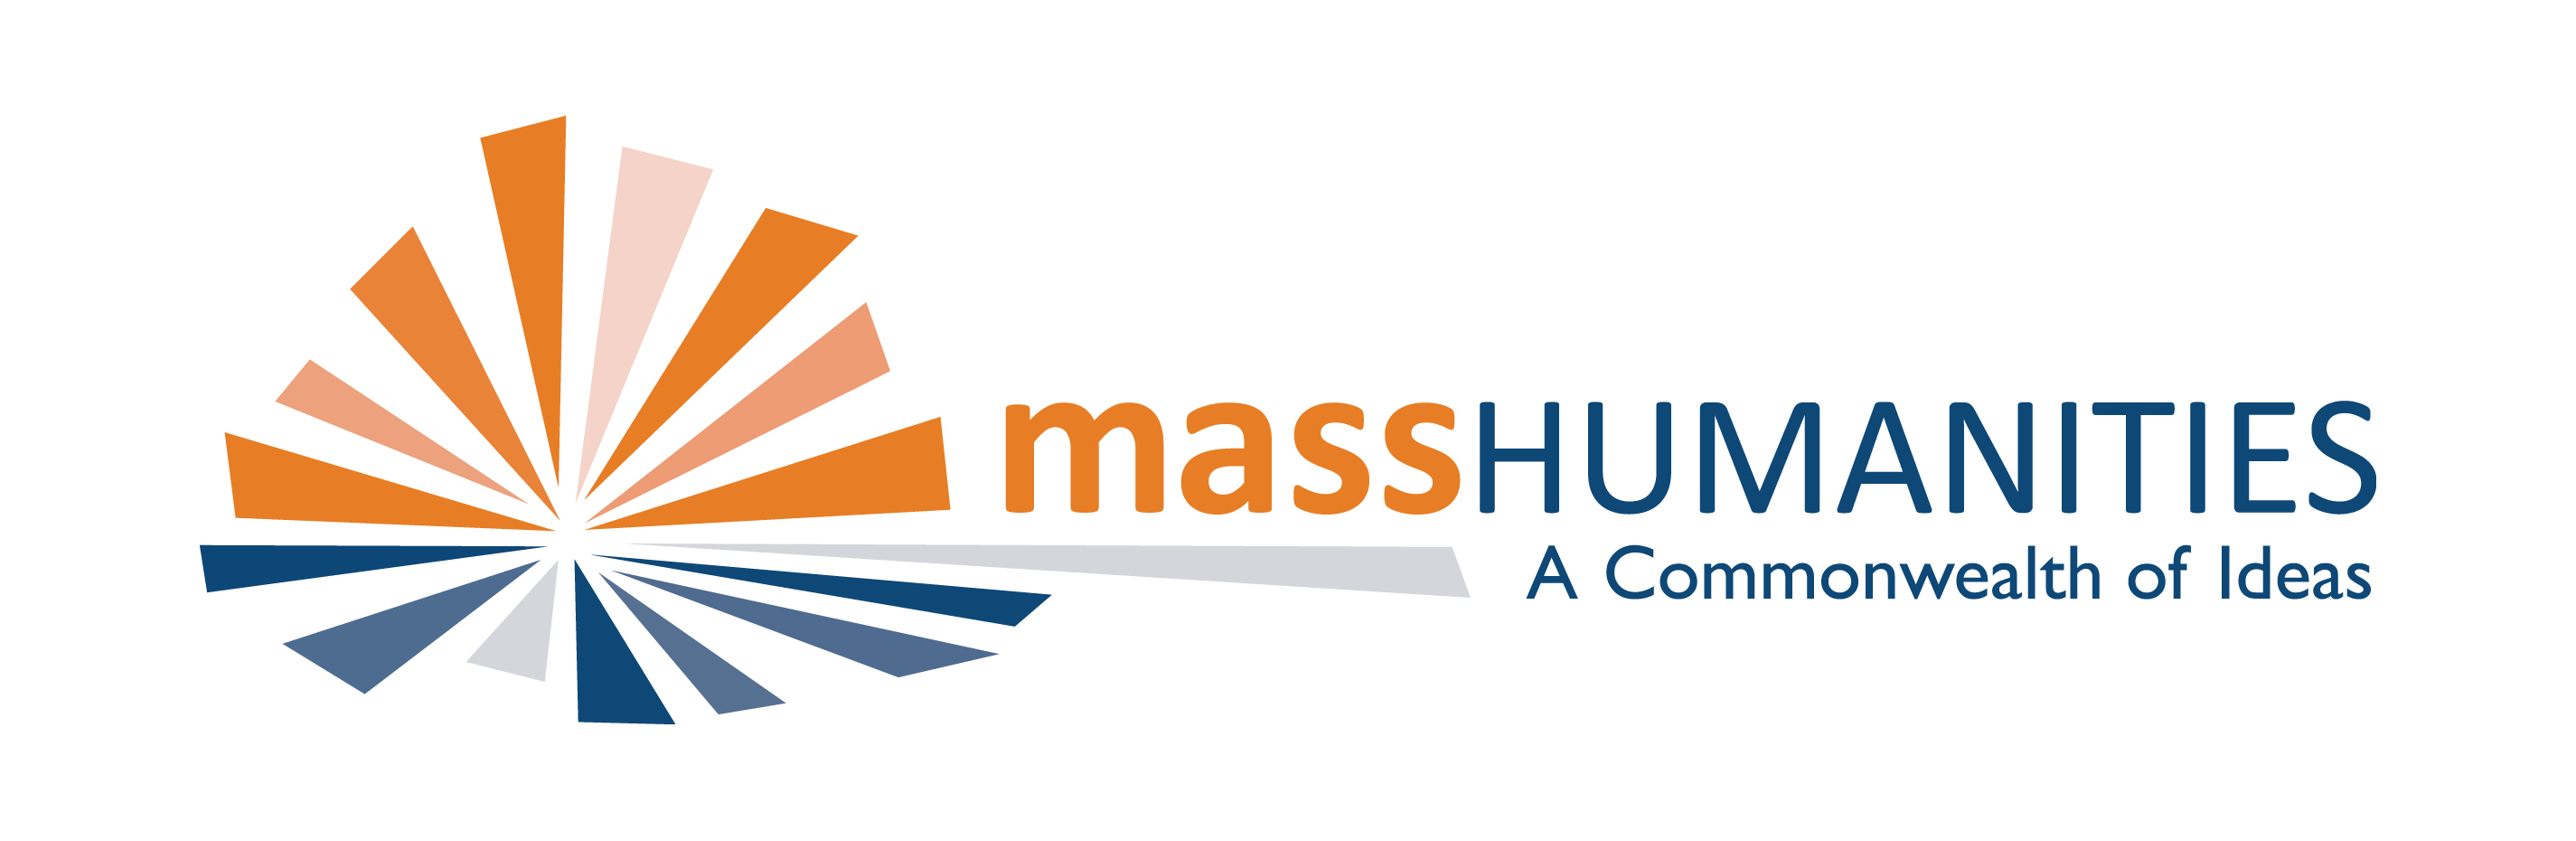 MassHumanties Logo